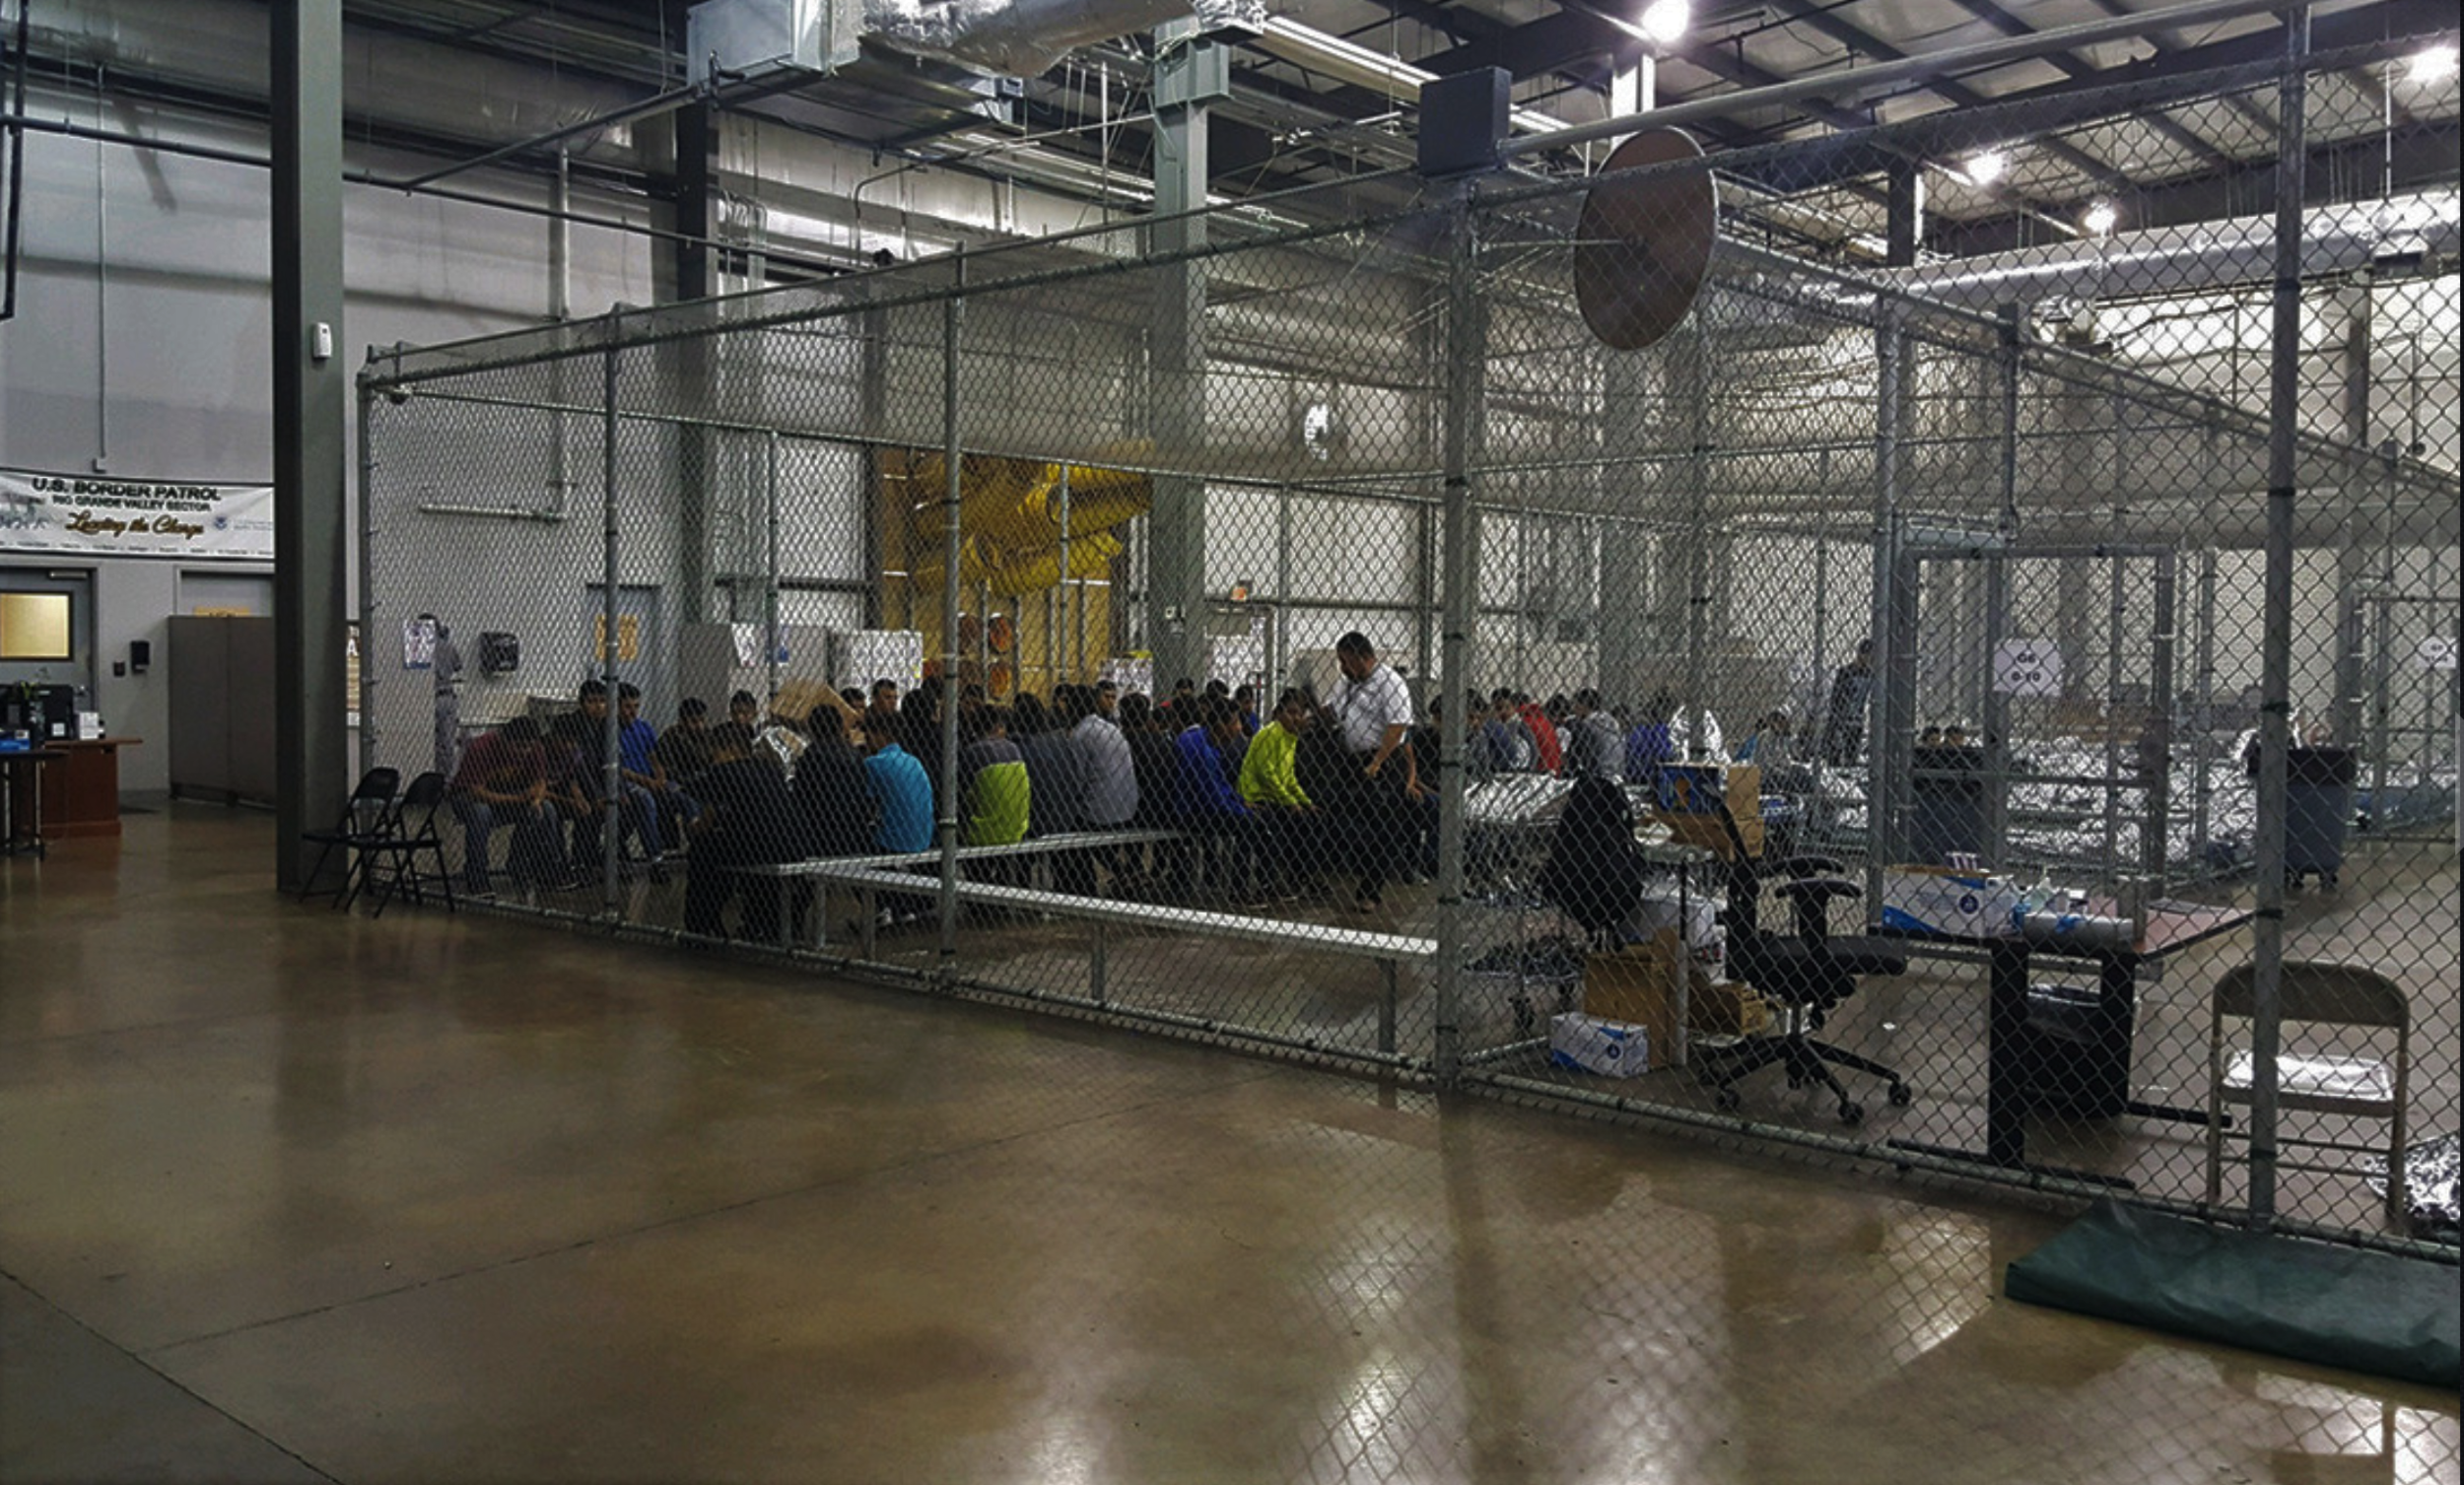 Q: Why are families/immigrants coming to U.S. Southern border? -